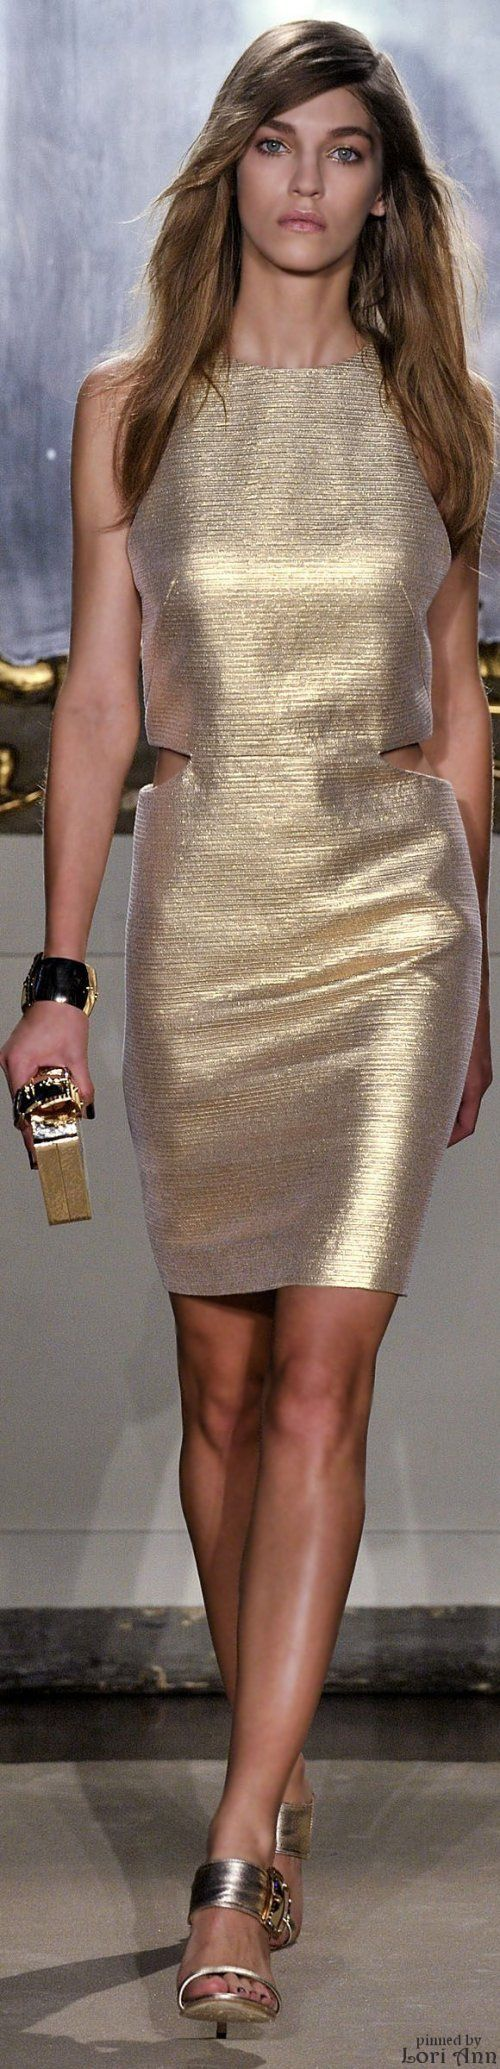 Gold Rush #fashion #inspiration #trend #fall #winter #summer #spring #pantone #frühjahr #sommer #herbst #style #outfit #ootd #filizity